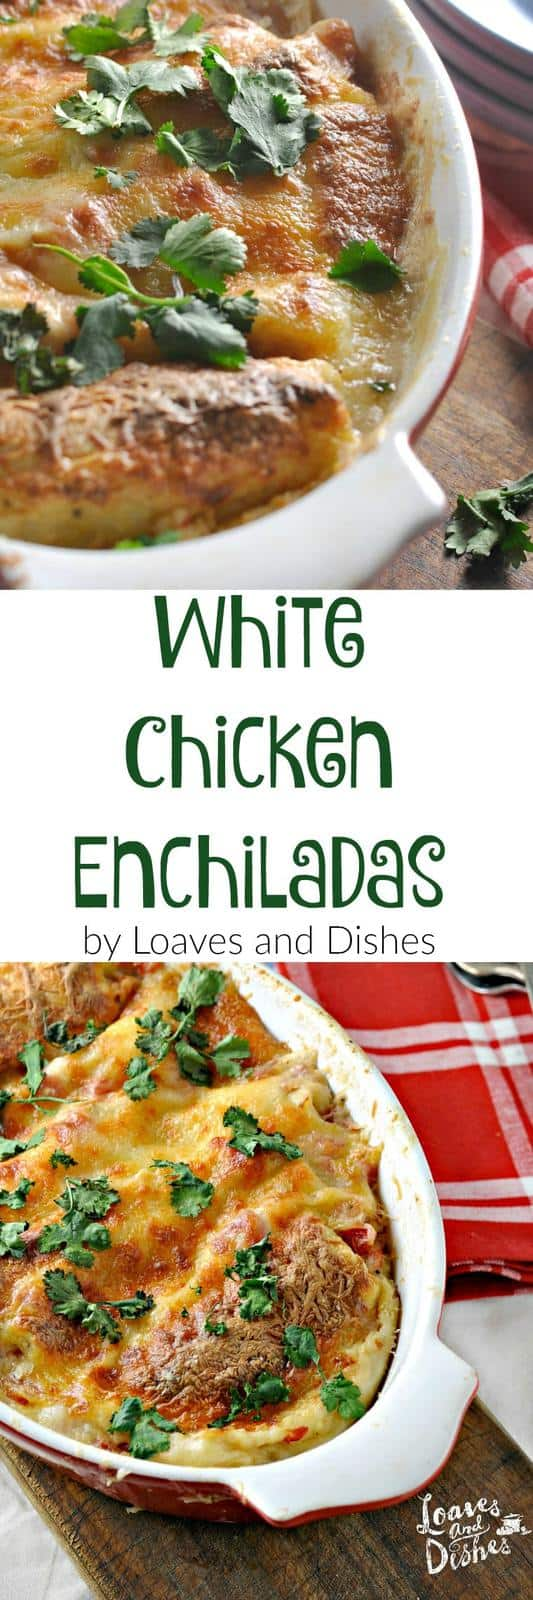 White Chicken Enchiladas Loaves And Dishes